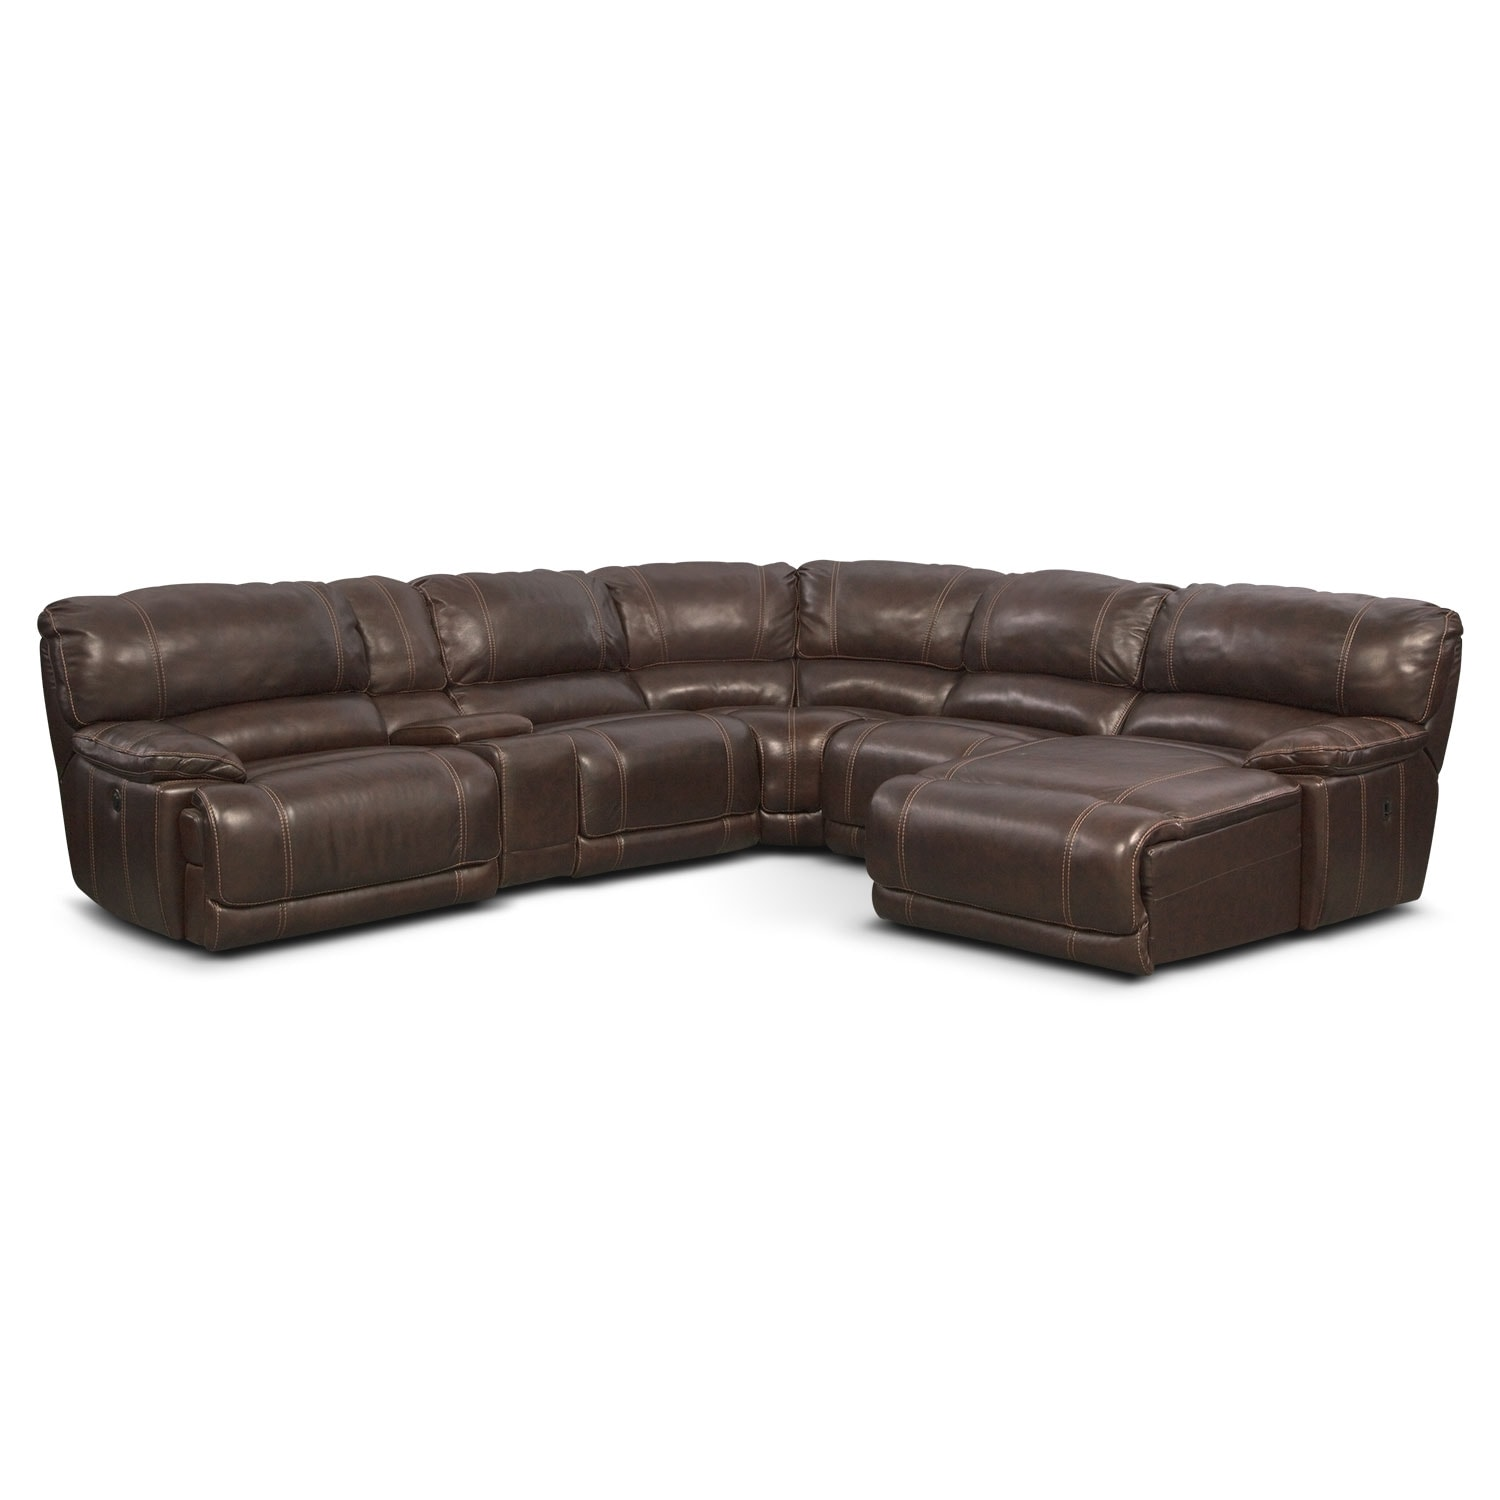 St Malo 6 Piece Power Reclining Sectional With Chaise And 2 Reclining Seats